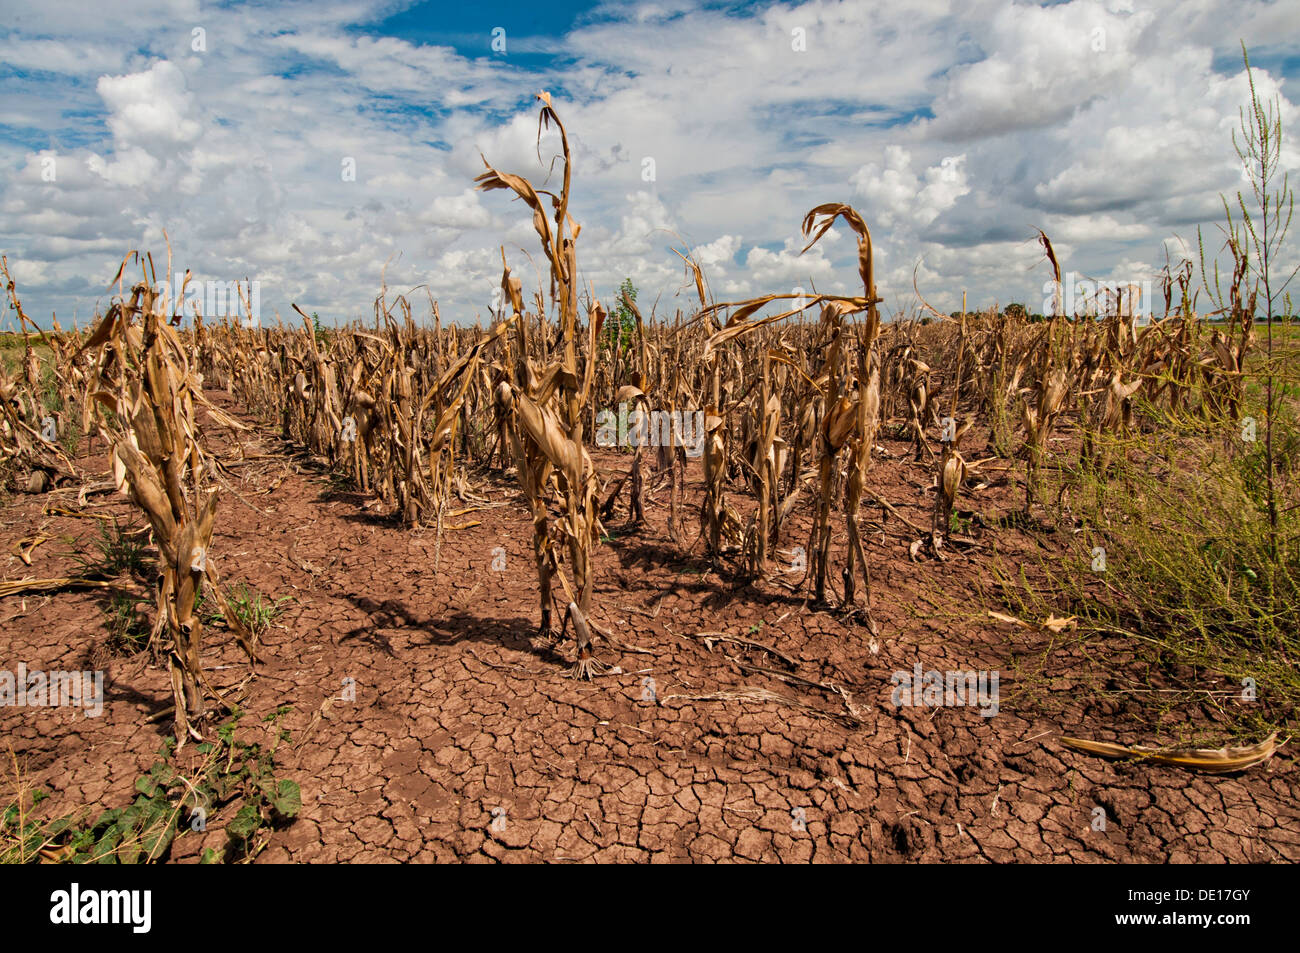 Drought devastated corn crops August 20, 2013 in Navasota, Texas. - Stock Image